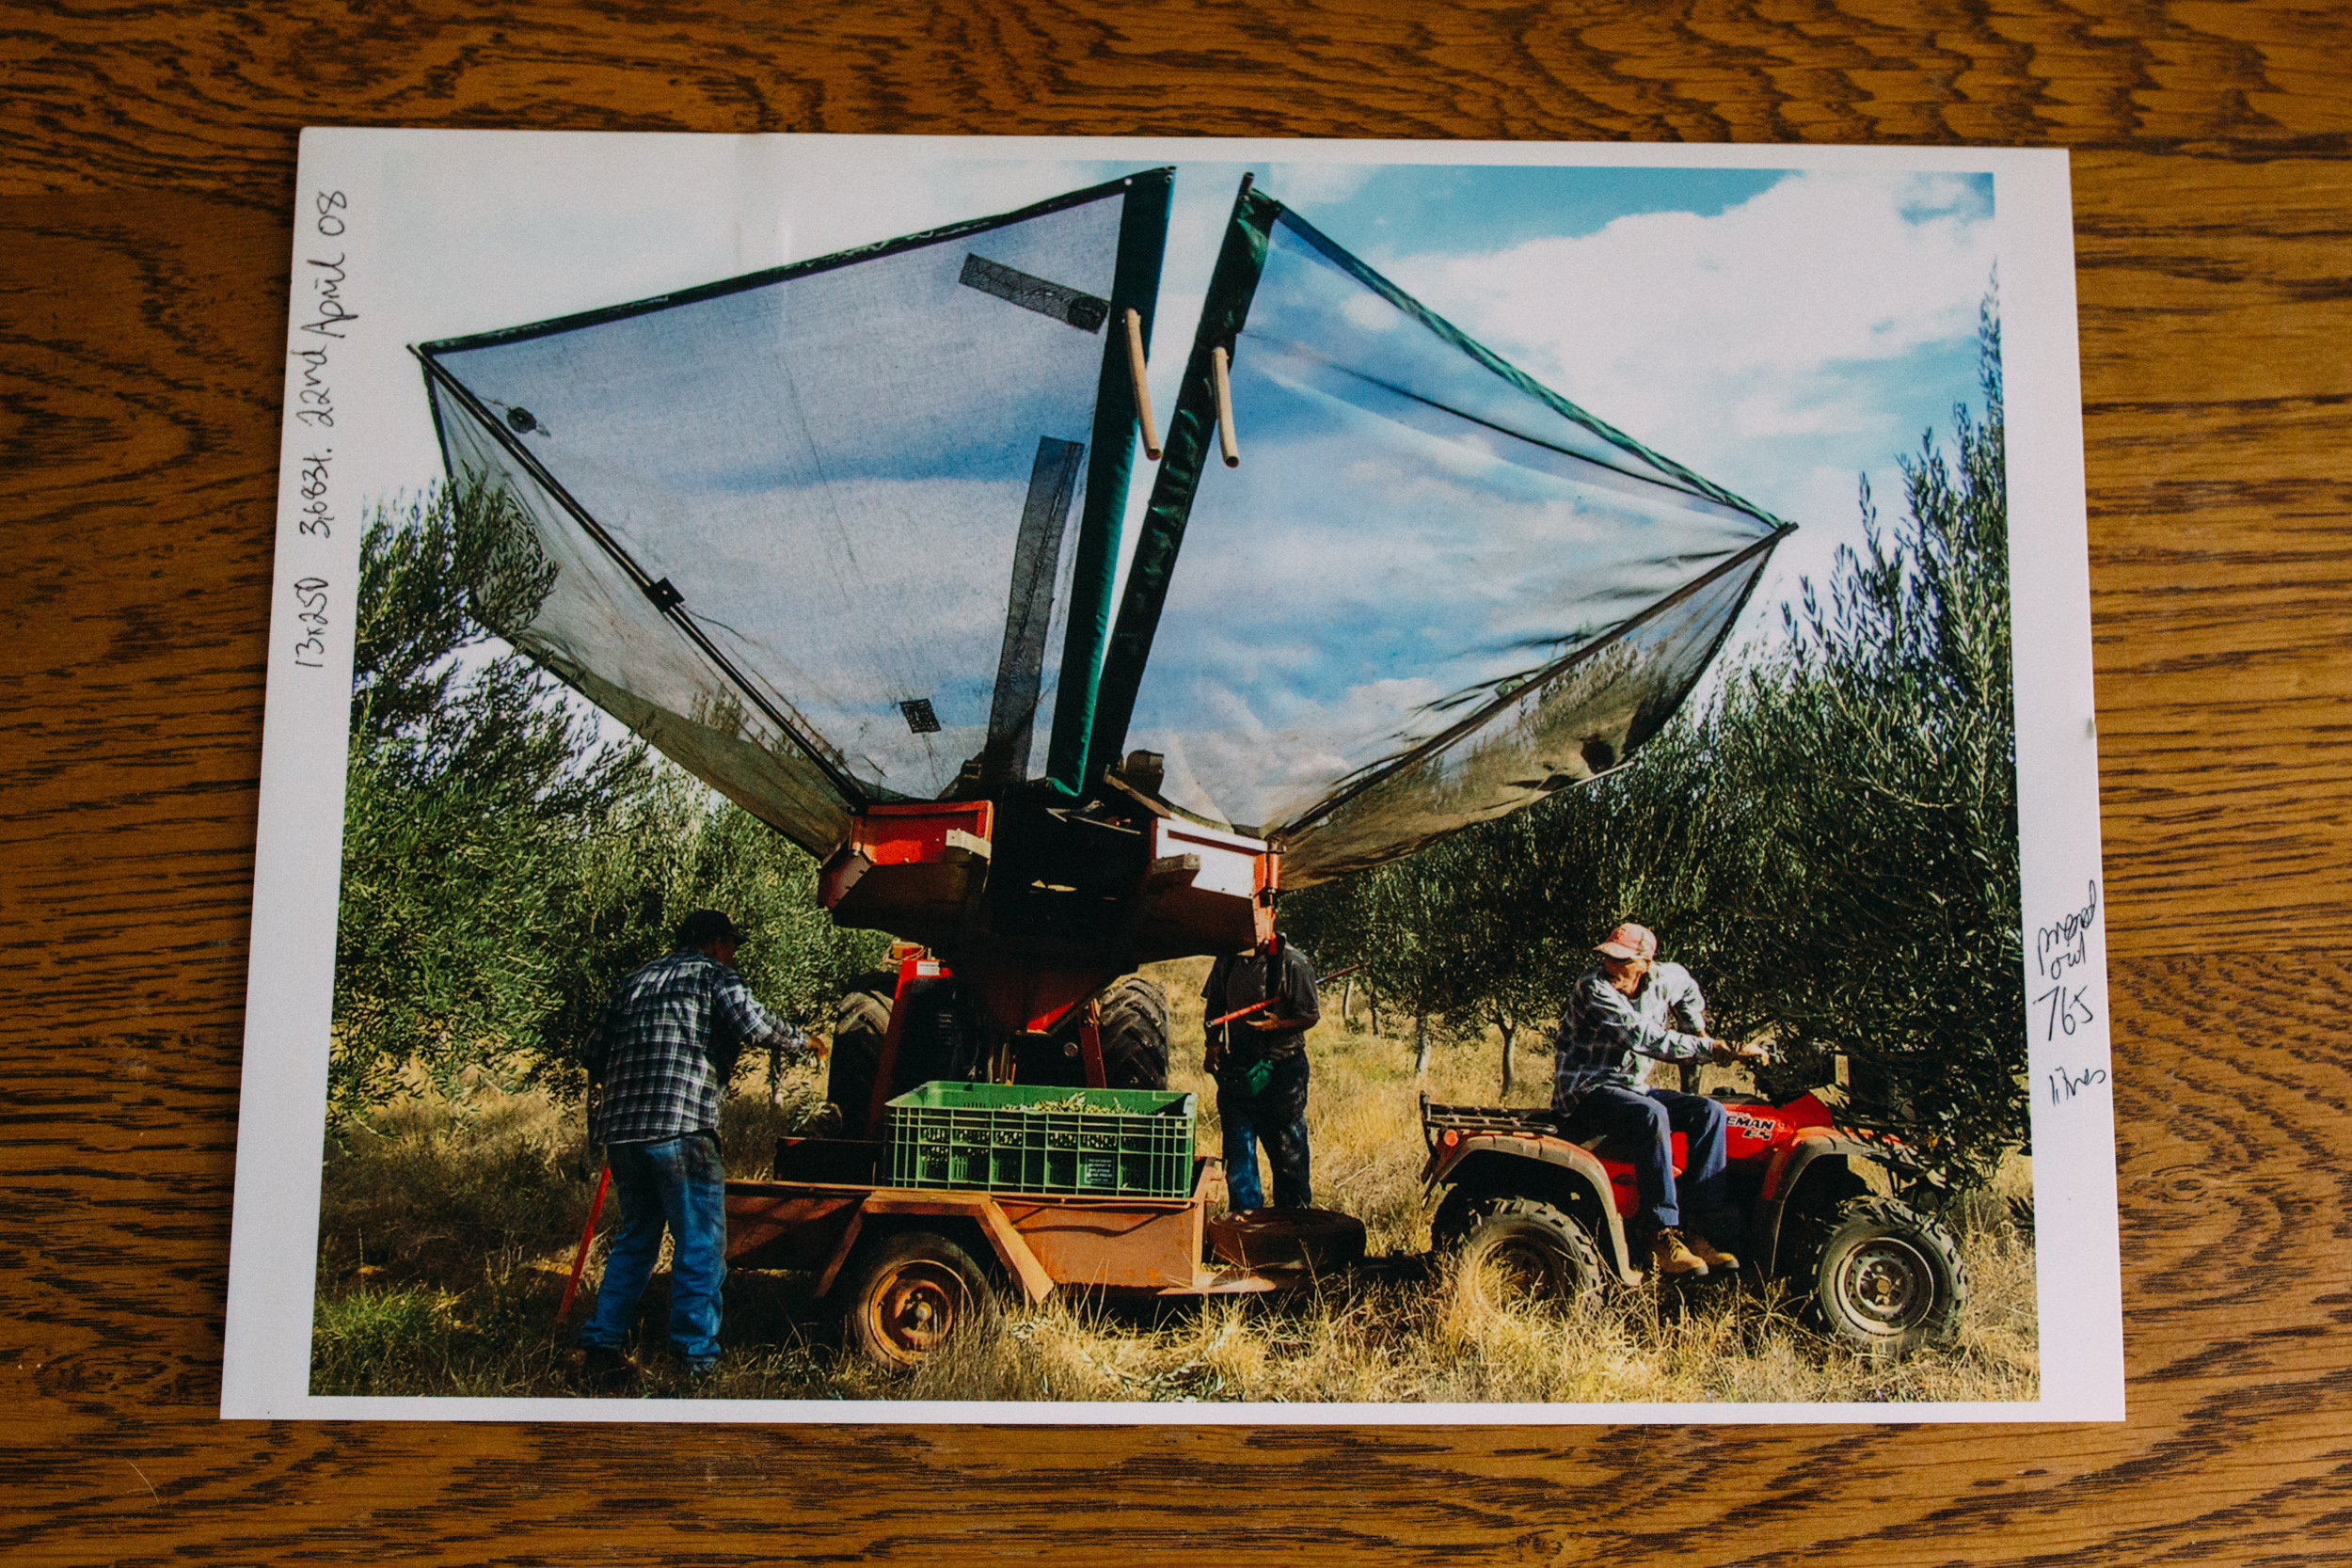 Workers hard at work on the olive groves, 2018, Image: supplied by Sally Hall.